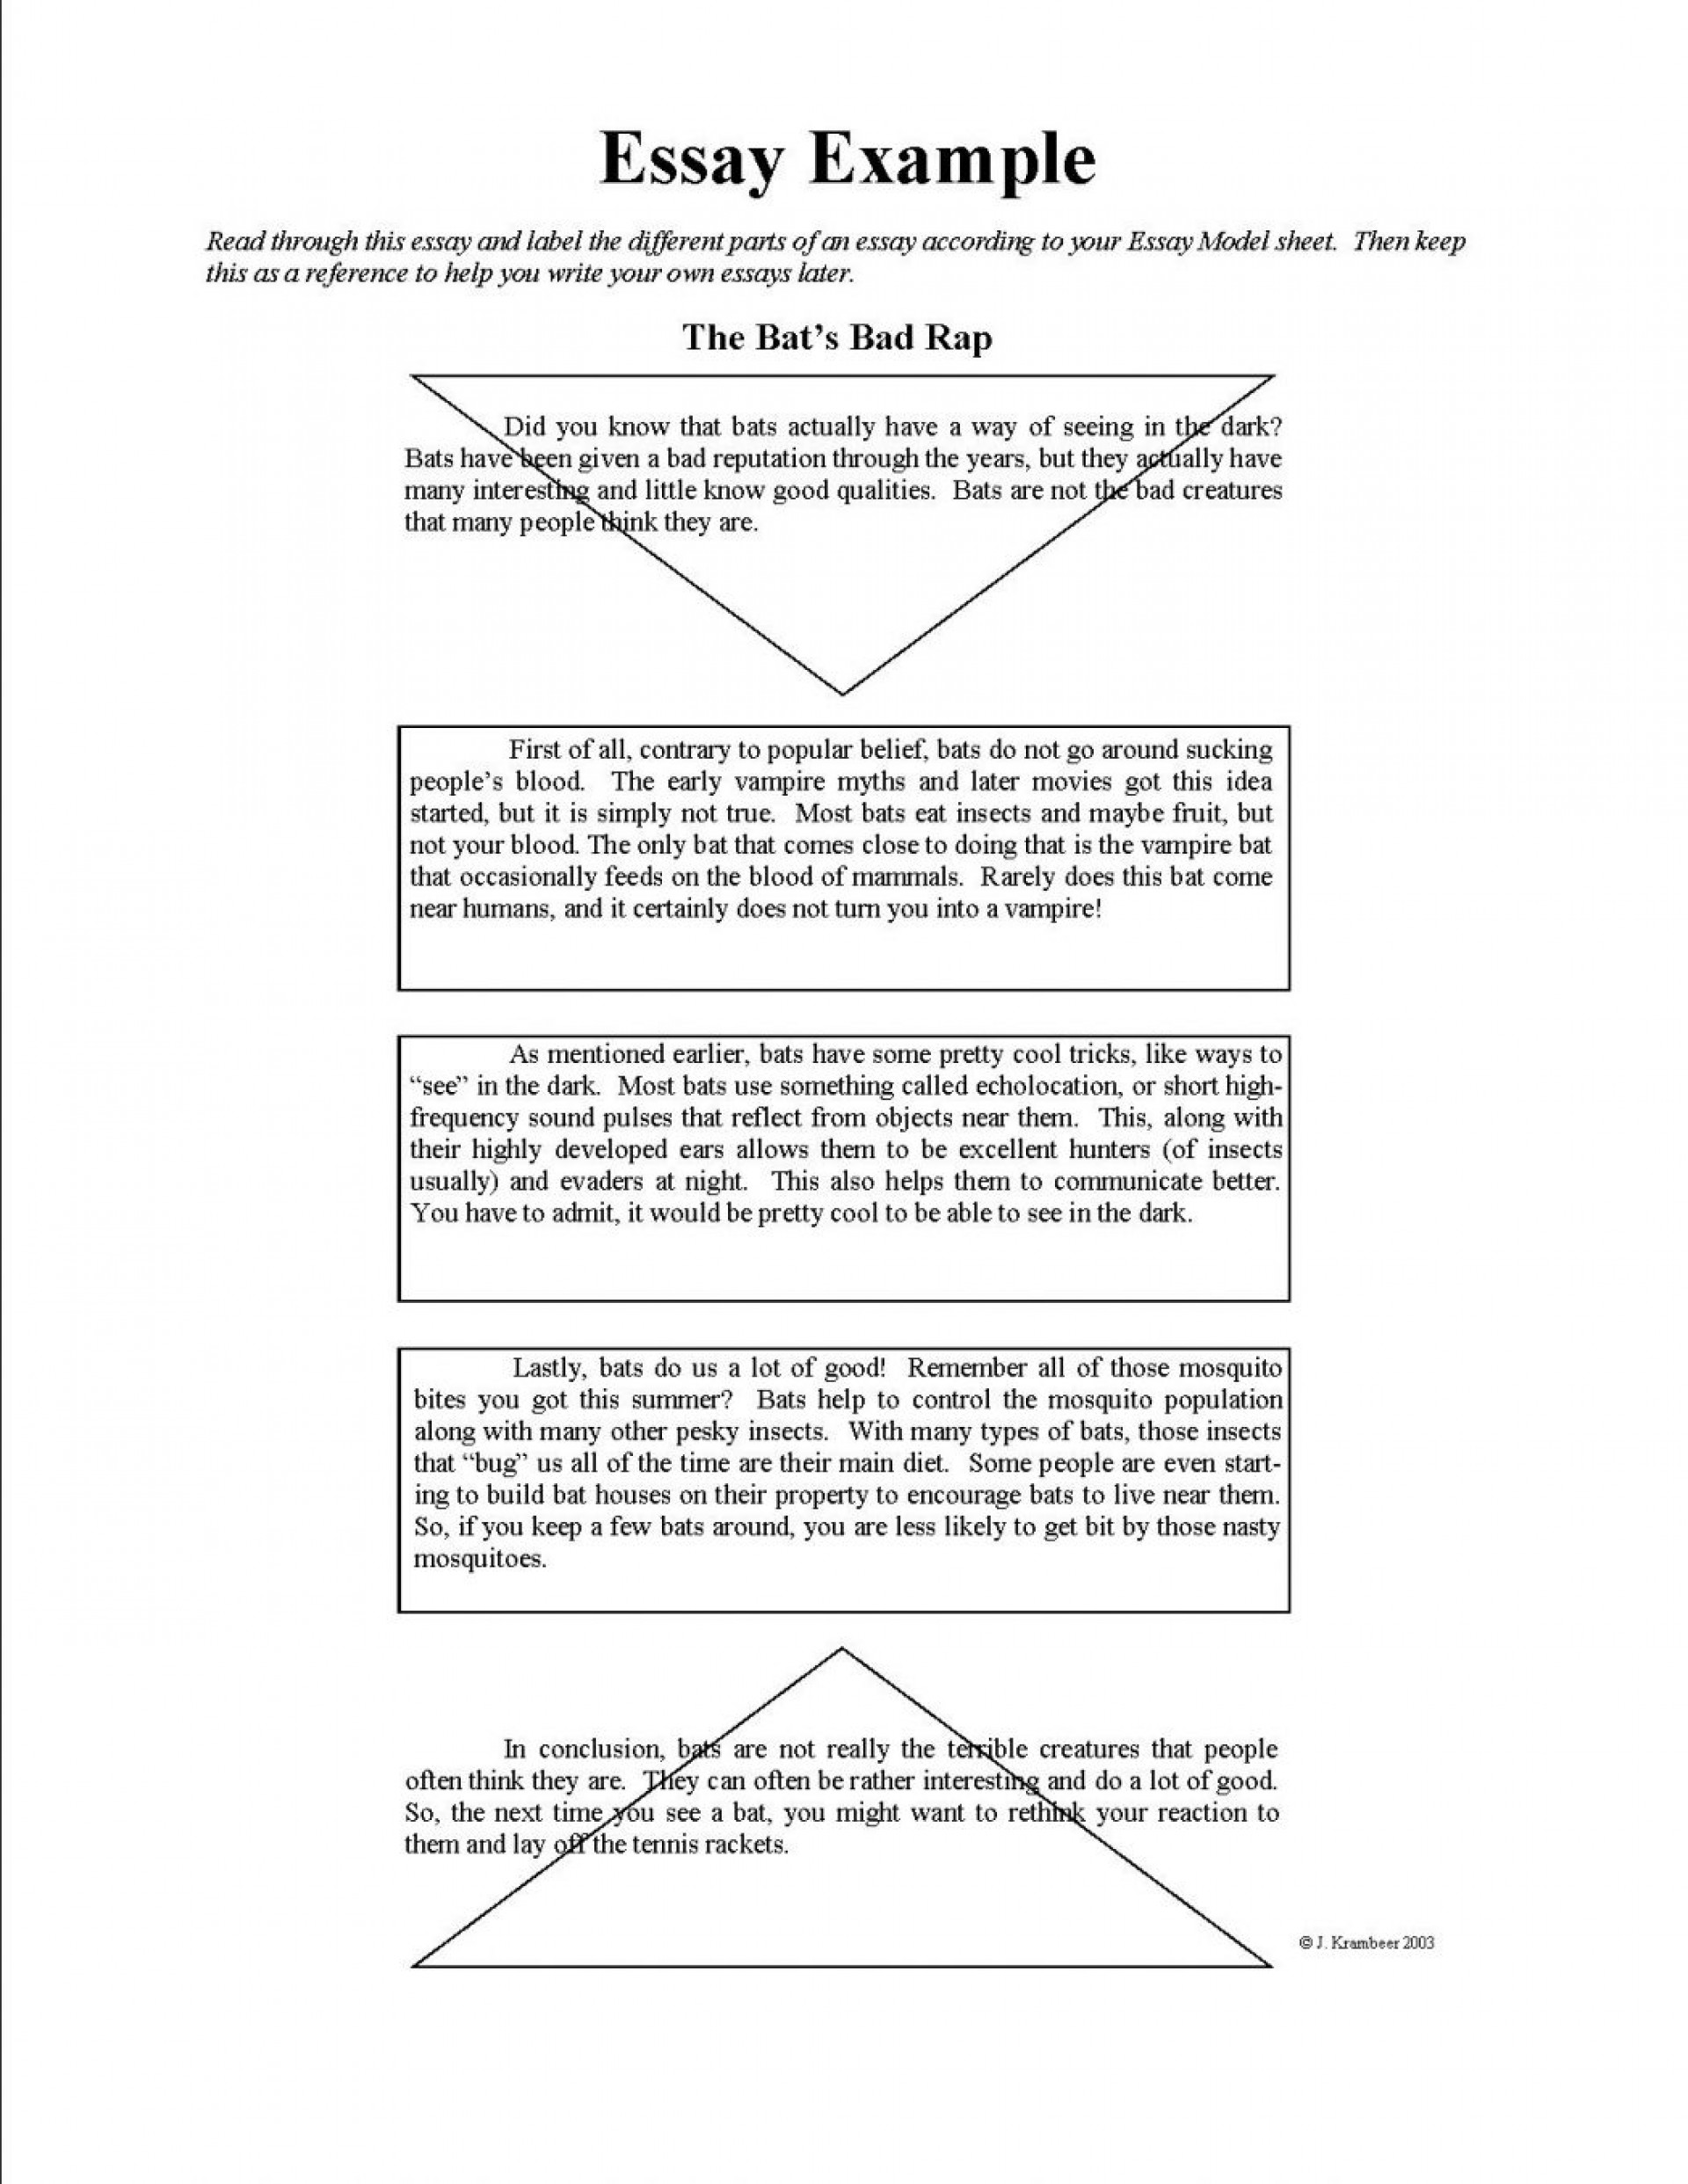 013 Gre Argument Essay Template Persuasive Exa Topics Ets Answers Pdf 1048x1356 Frightening Example 1920